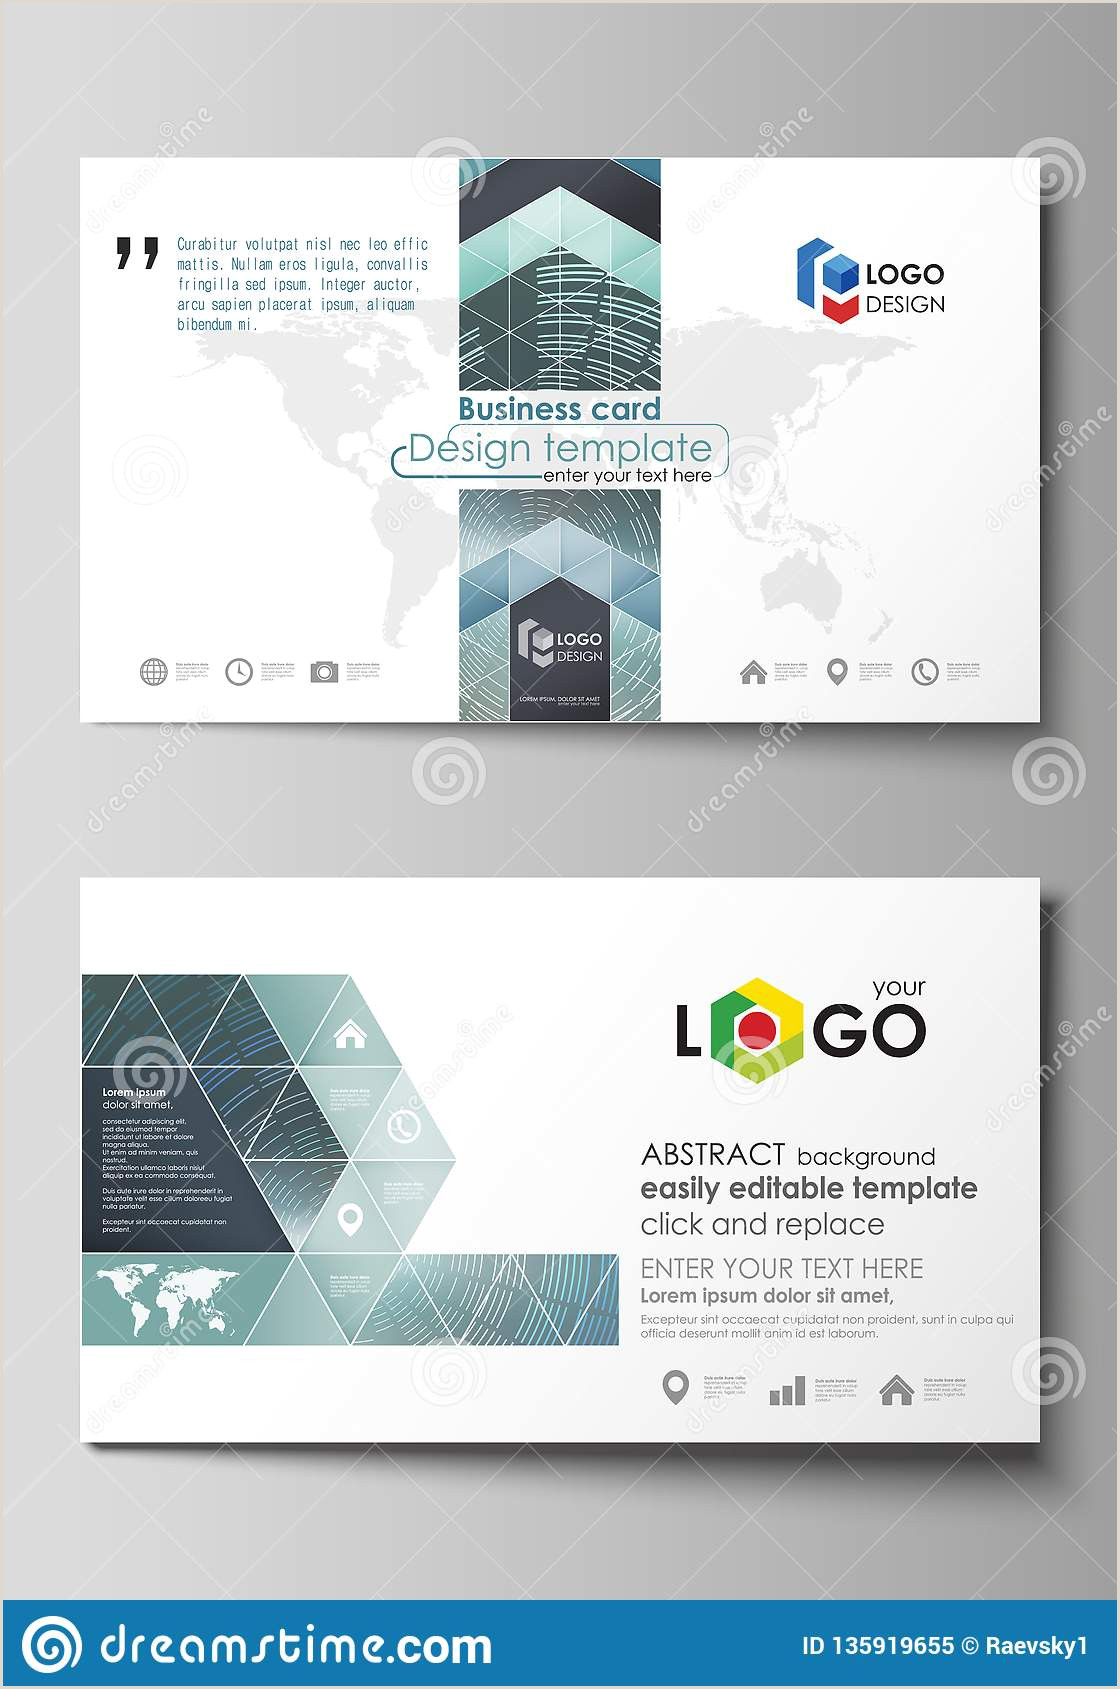 How To Make A Buisness Card Business Card Templates Easy Editable Layout Abstract